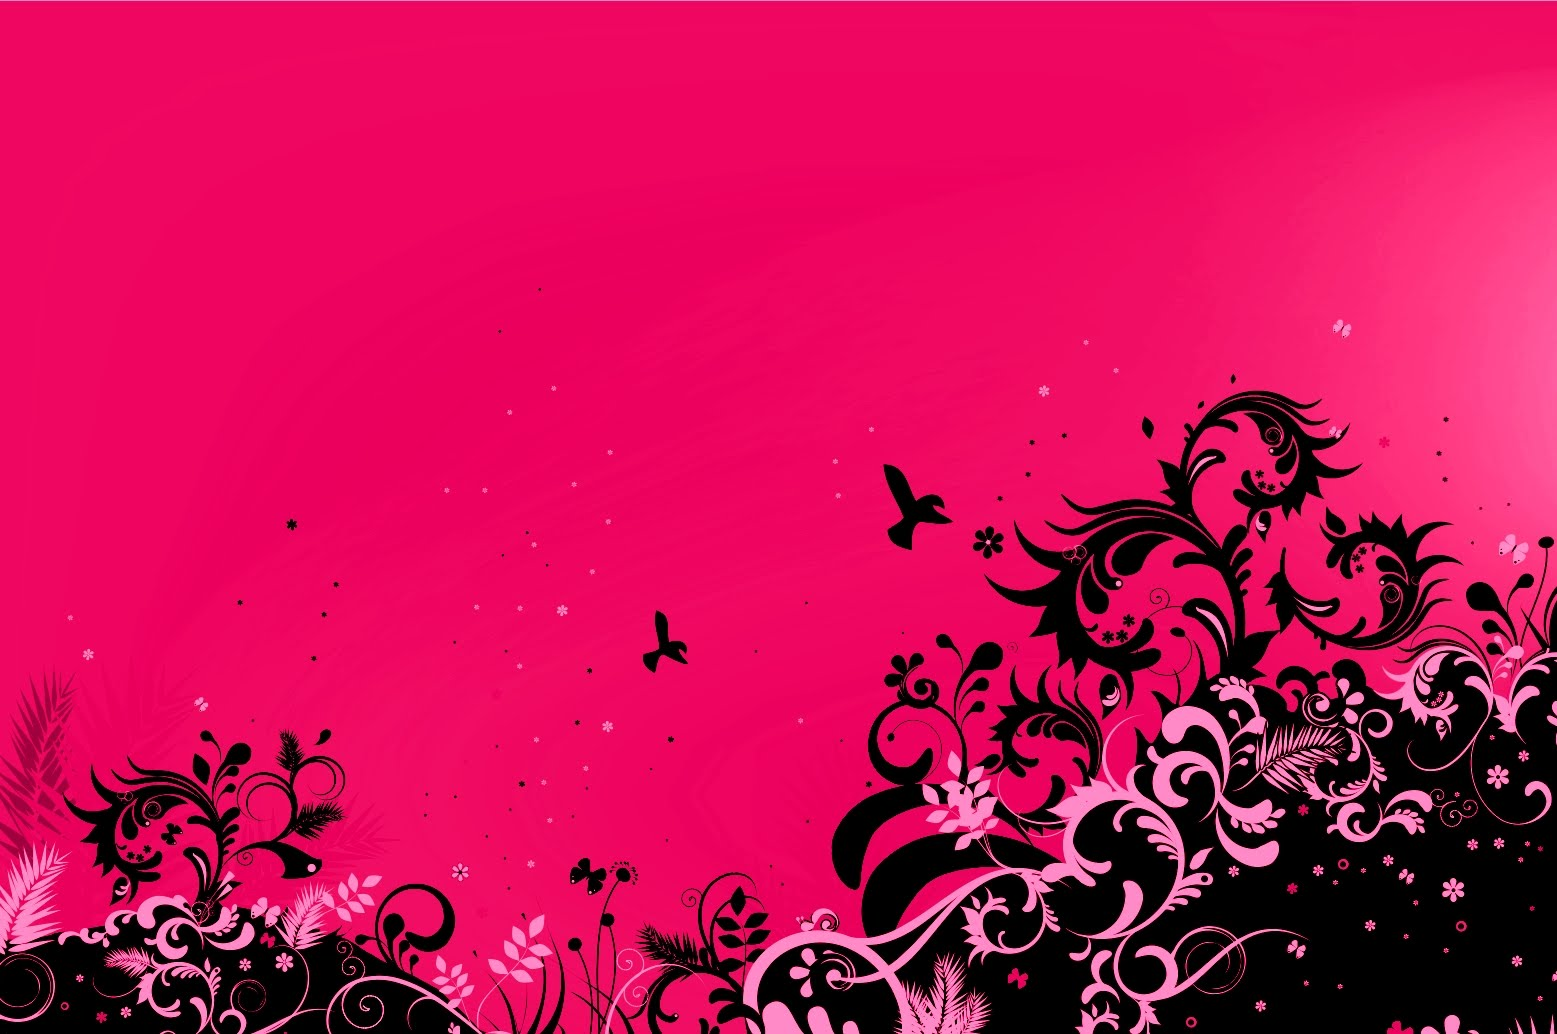 awesome abstract wallpapers pink - photo #13